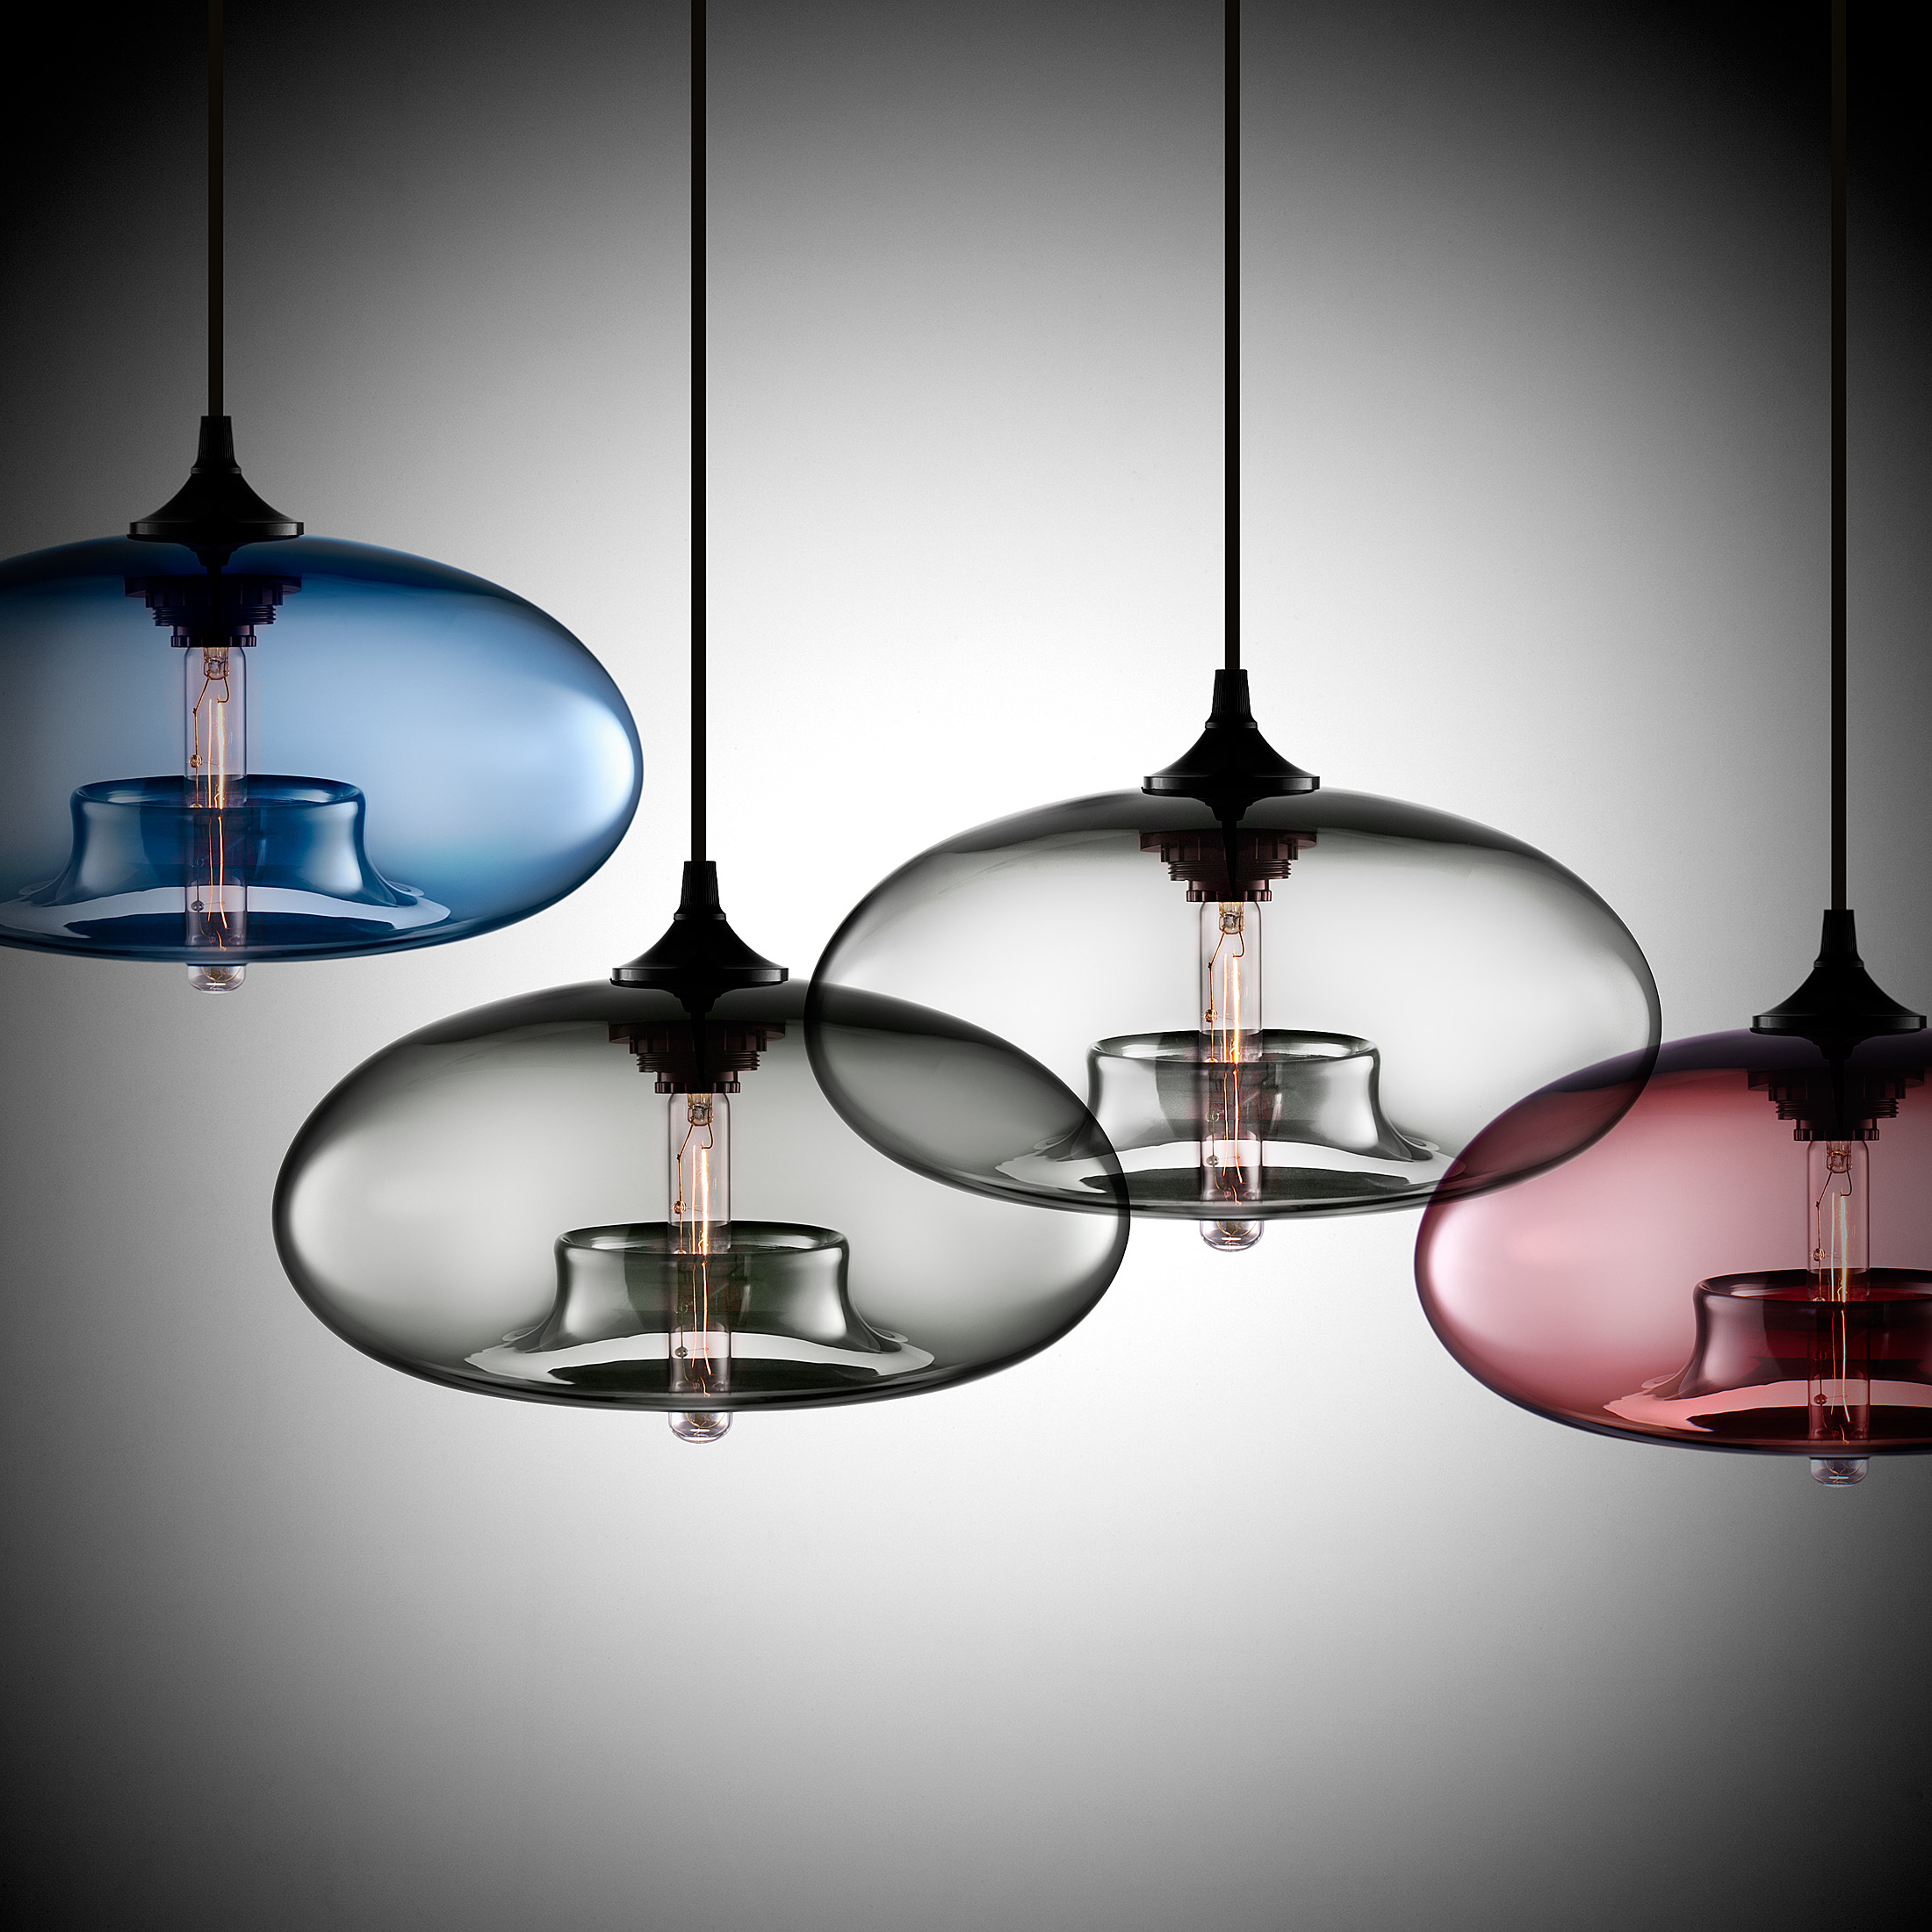 Hanging Lamp Design: Pendant Lamp Design